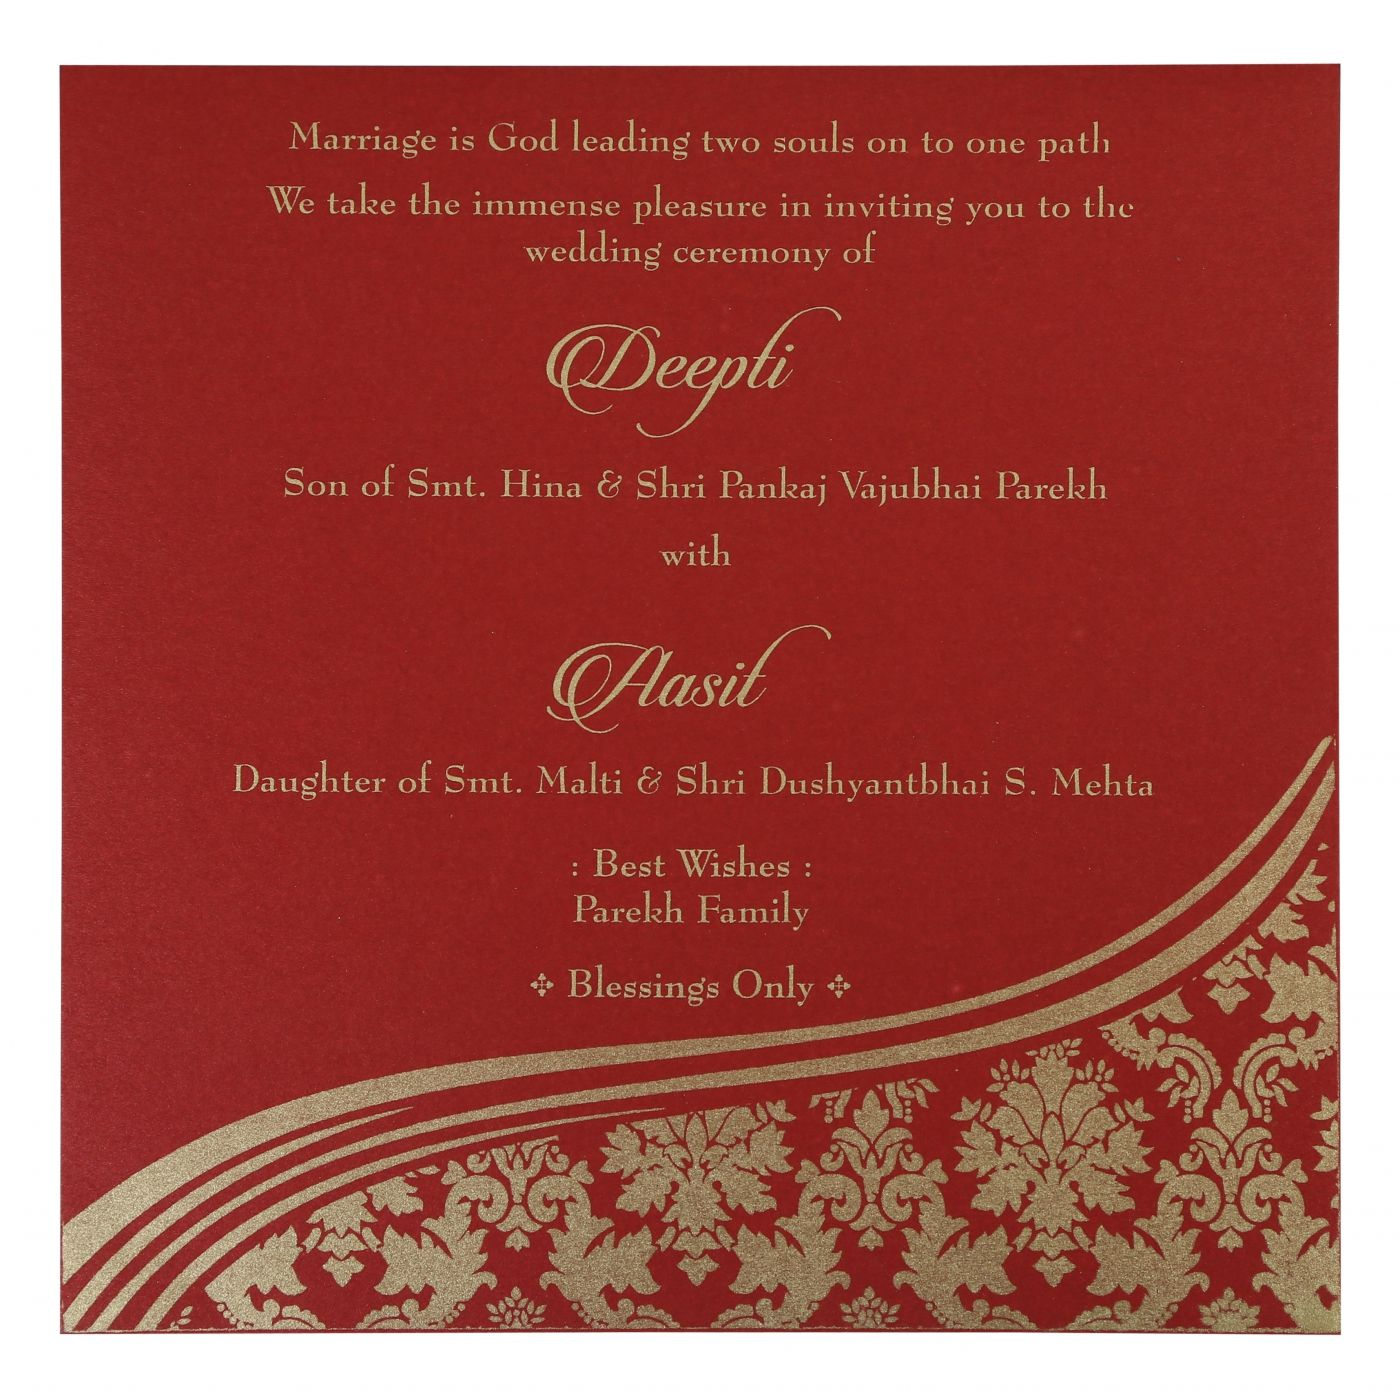 YELLOW GOLD SHIMMERY FOIL STAMPED WEDDING INVITATION : CS-1798 - IndianWeddingCards